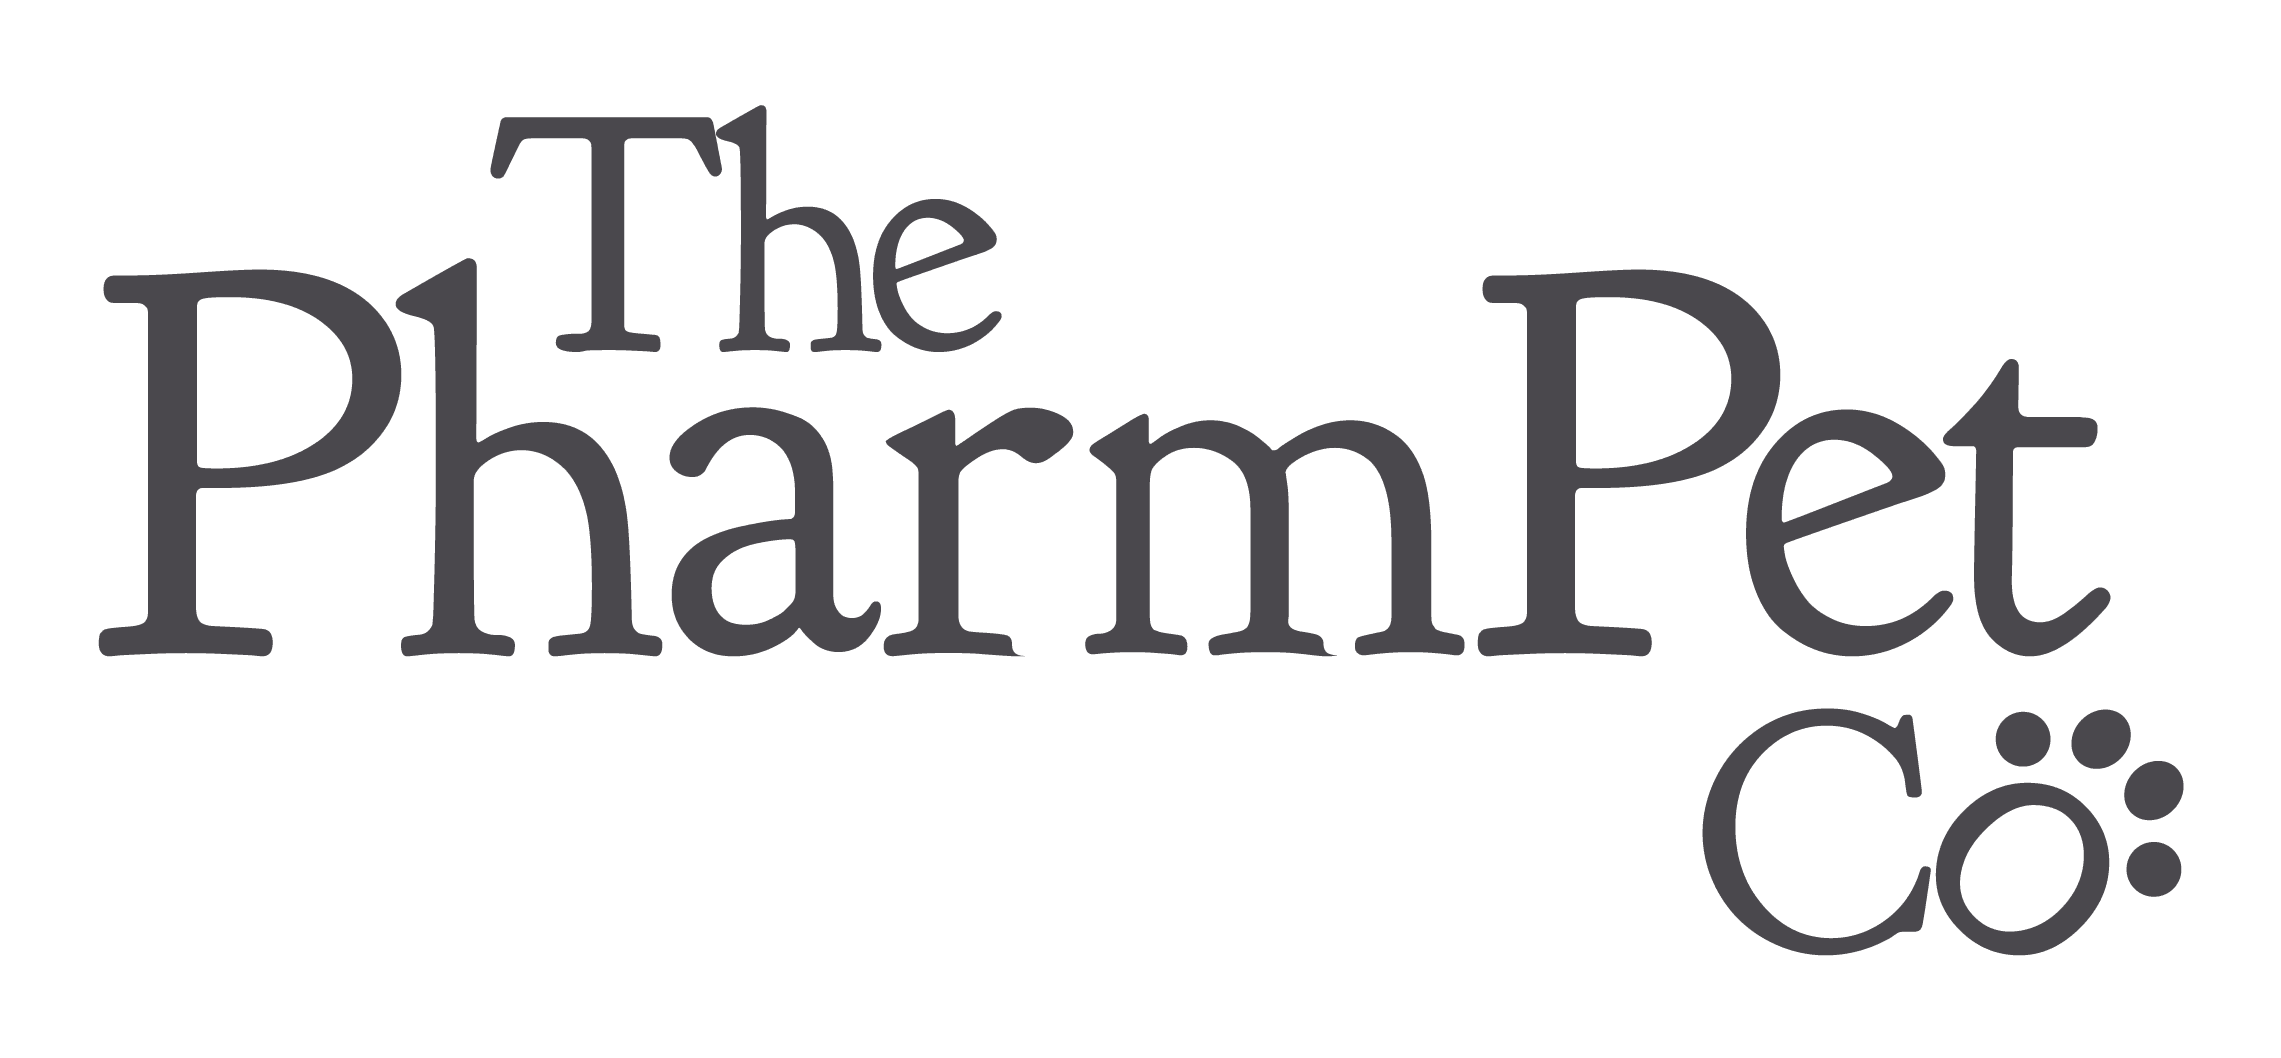 The PharmPet Co logo large